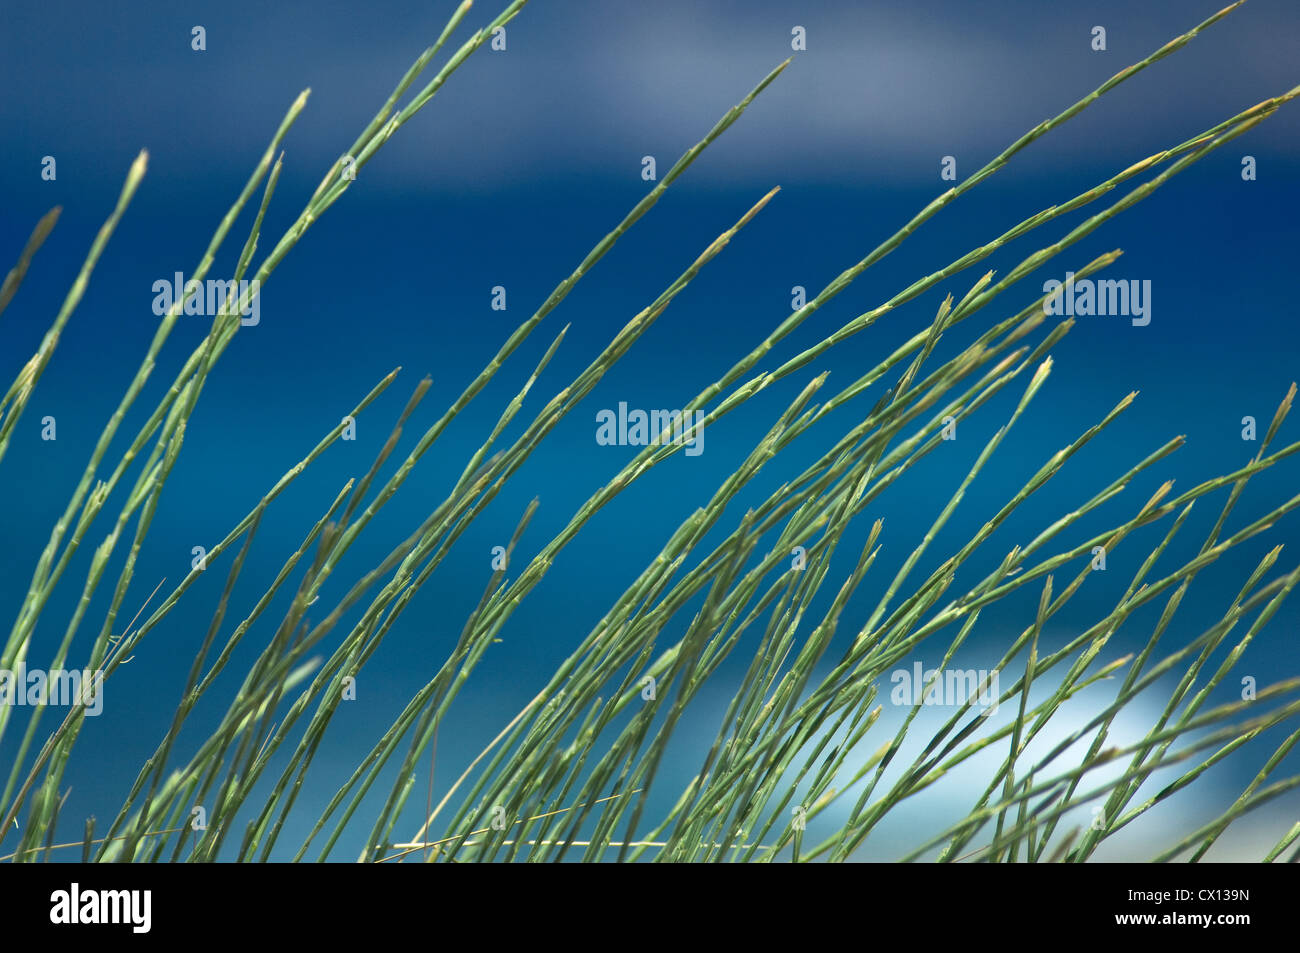 Closeup of grass blades on the beach in front of the blue and turquoise colored sea - Stock Image